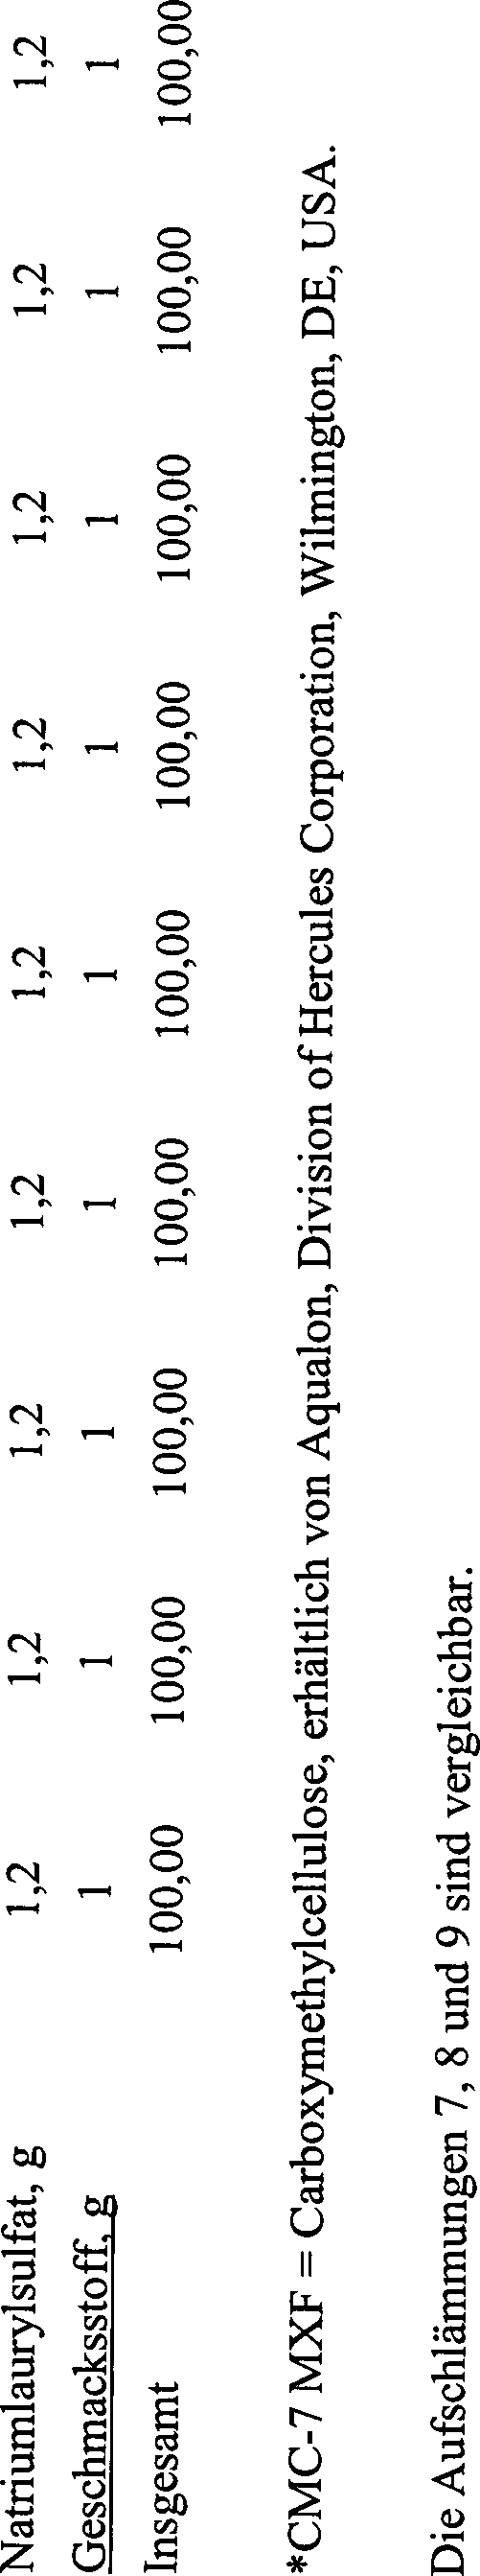 DE60127691T2 - Abrasive preparation and process for their